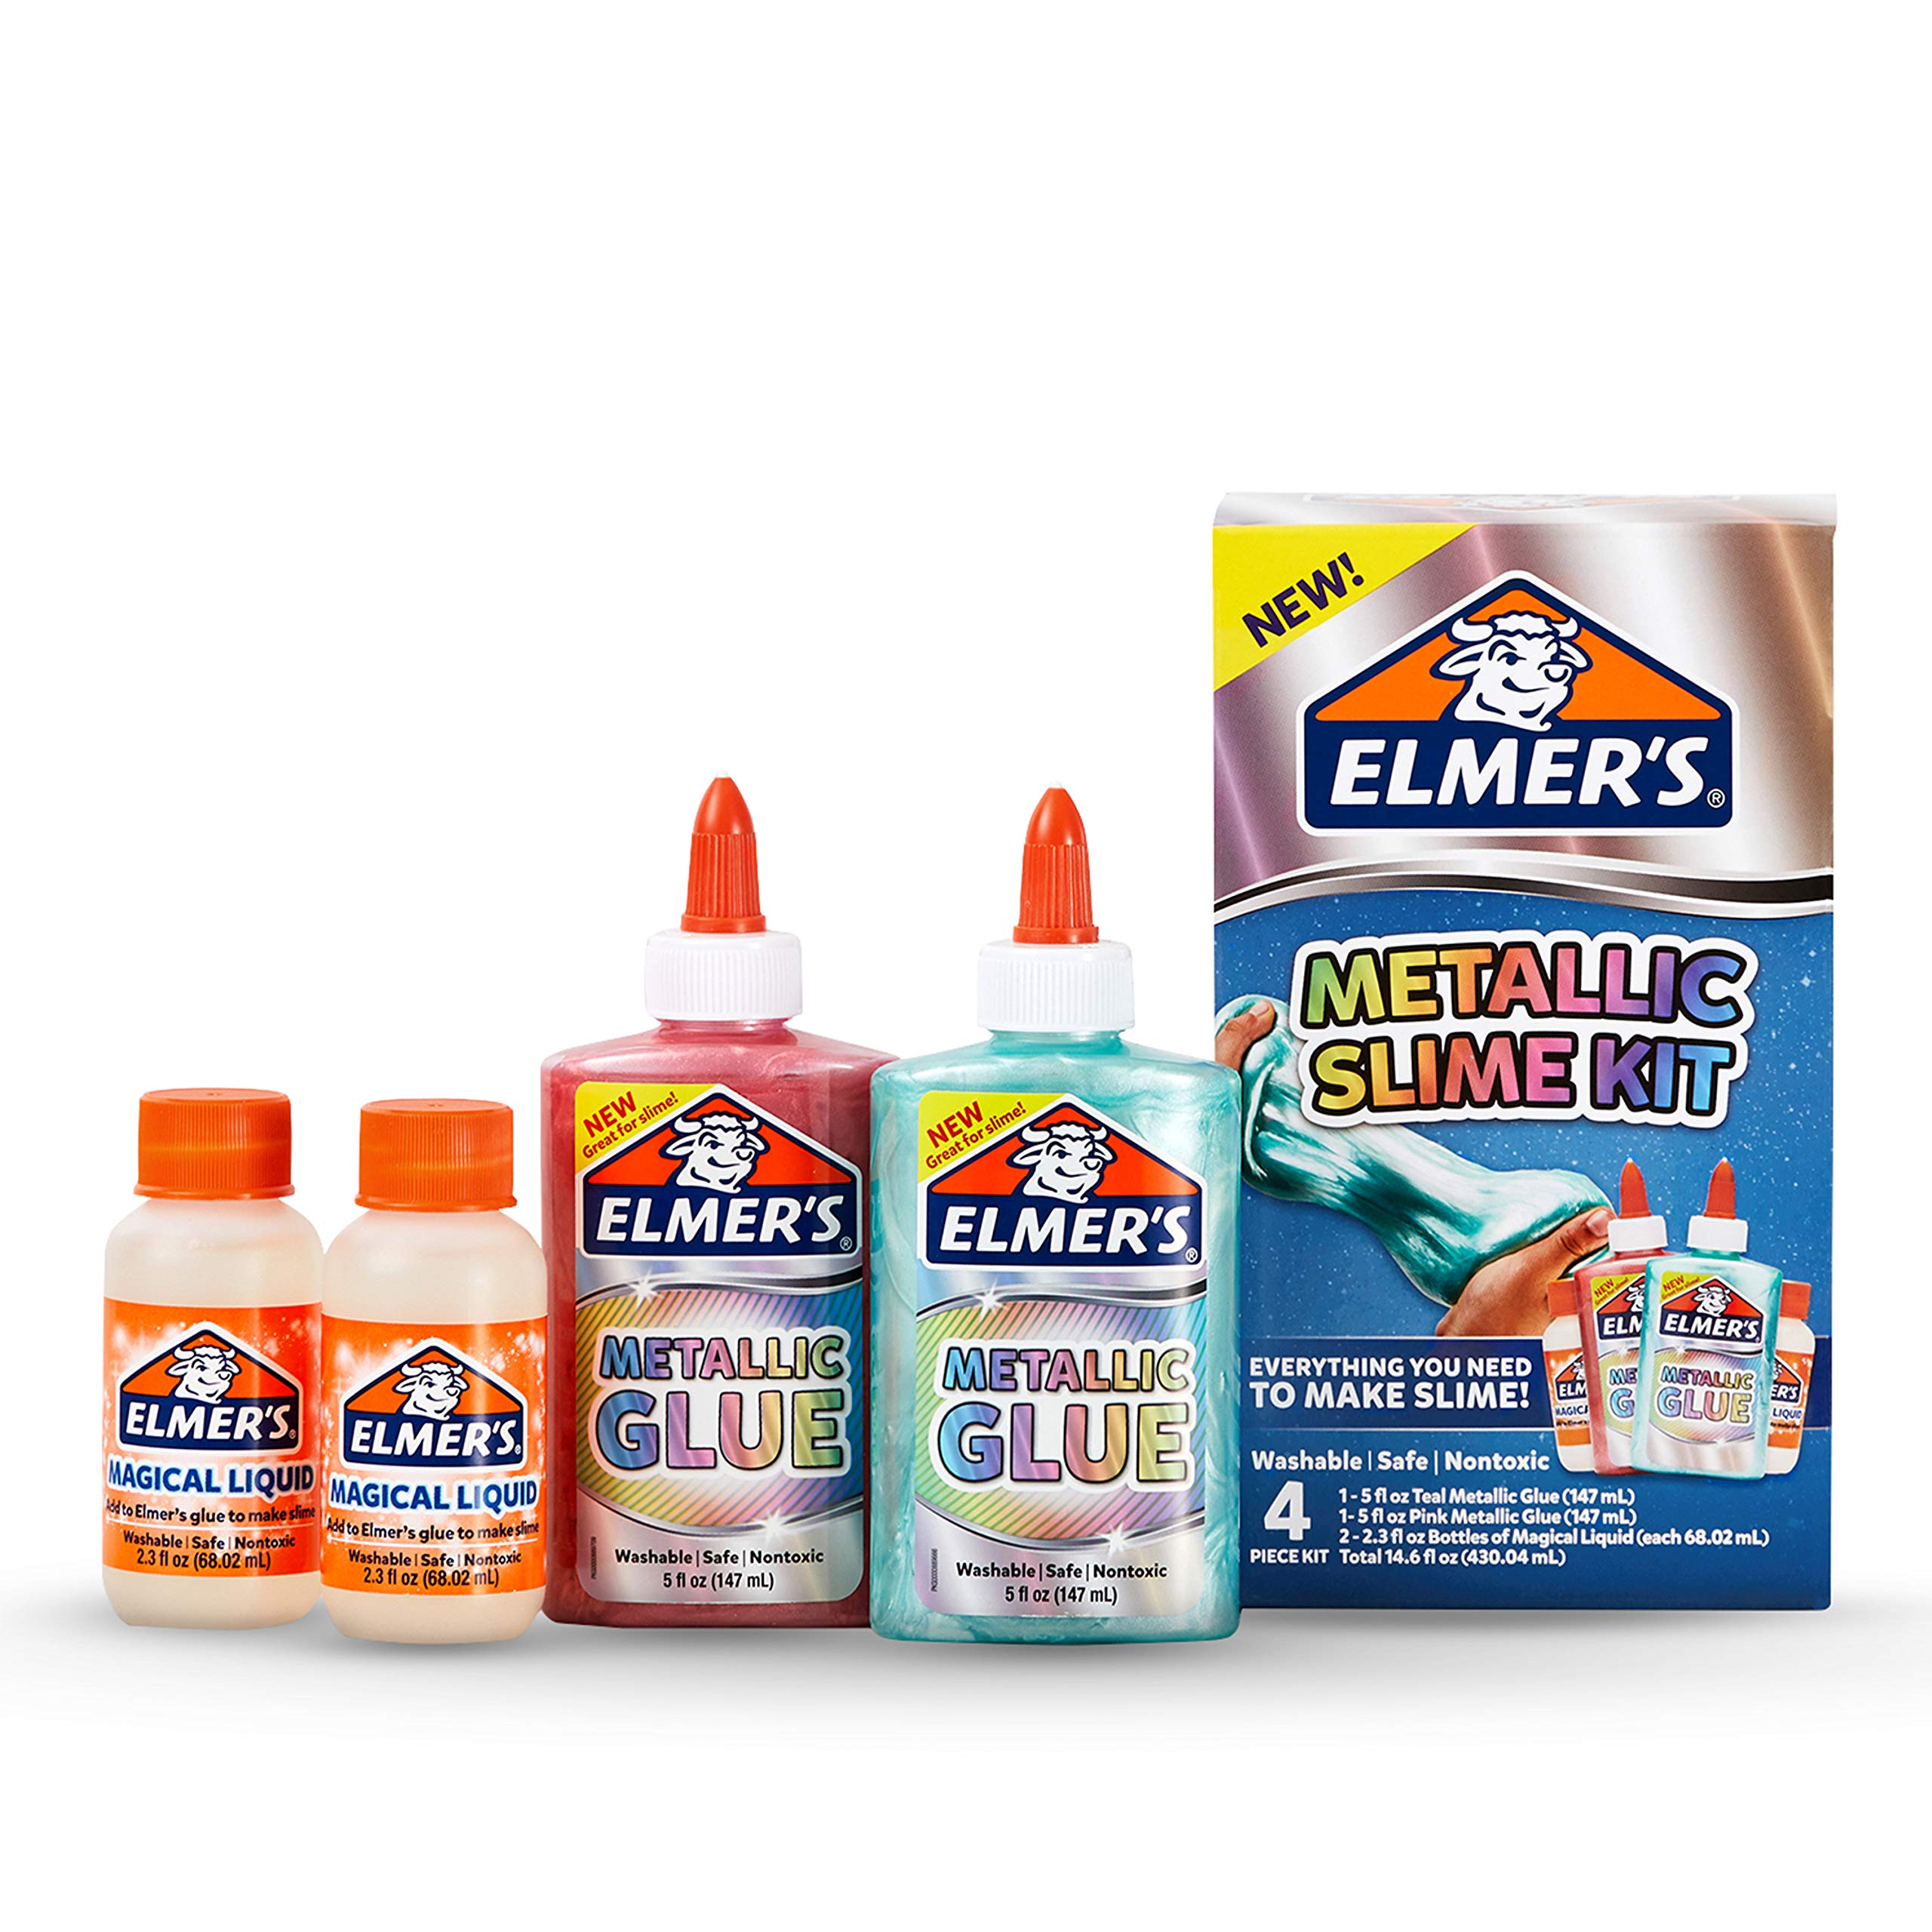 Elmer'S Slime Kit | Slime Supplies Include Elmer'S Metallic Glue, Elmer'S Magical Liquid Slime Activator, 4 Piece Kit by Elmer's